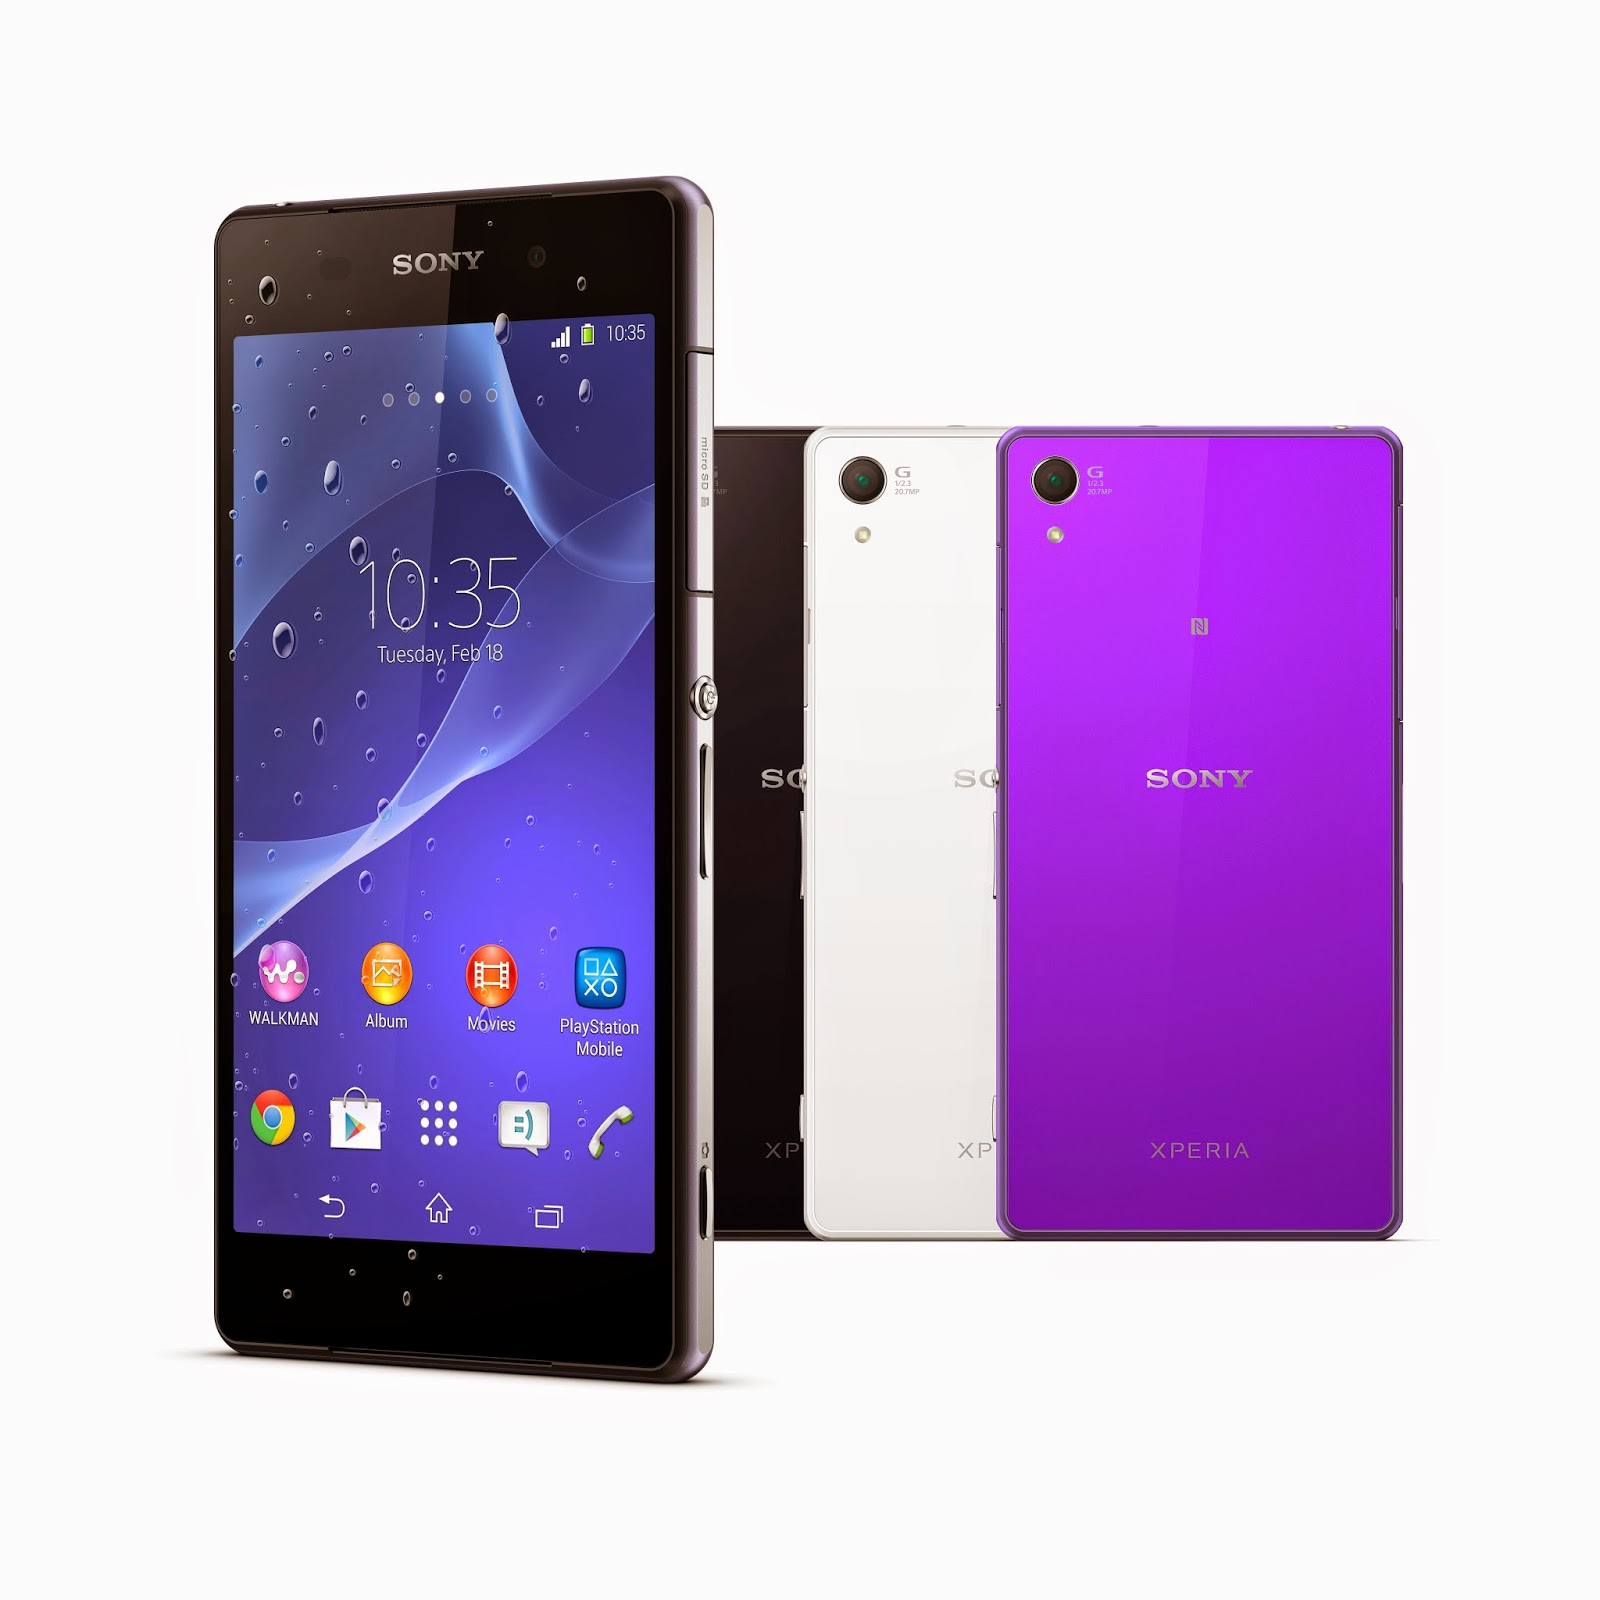 Sony Xperia Z2 to land in the UK on May 1st